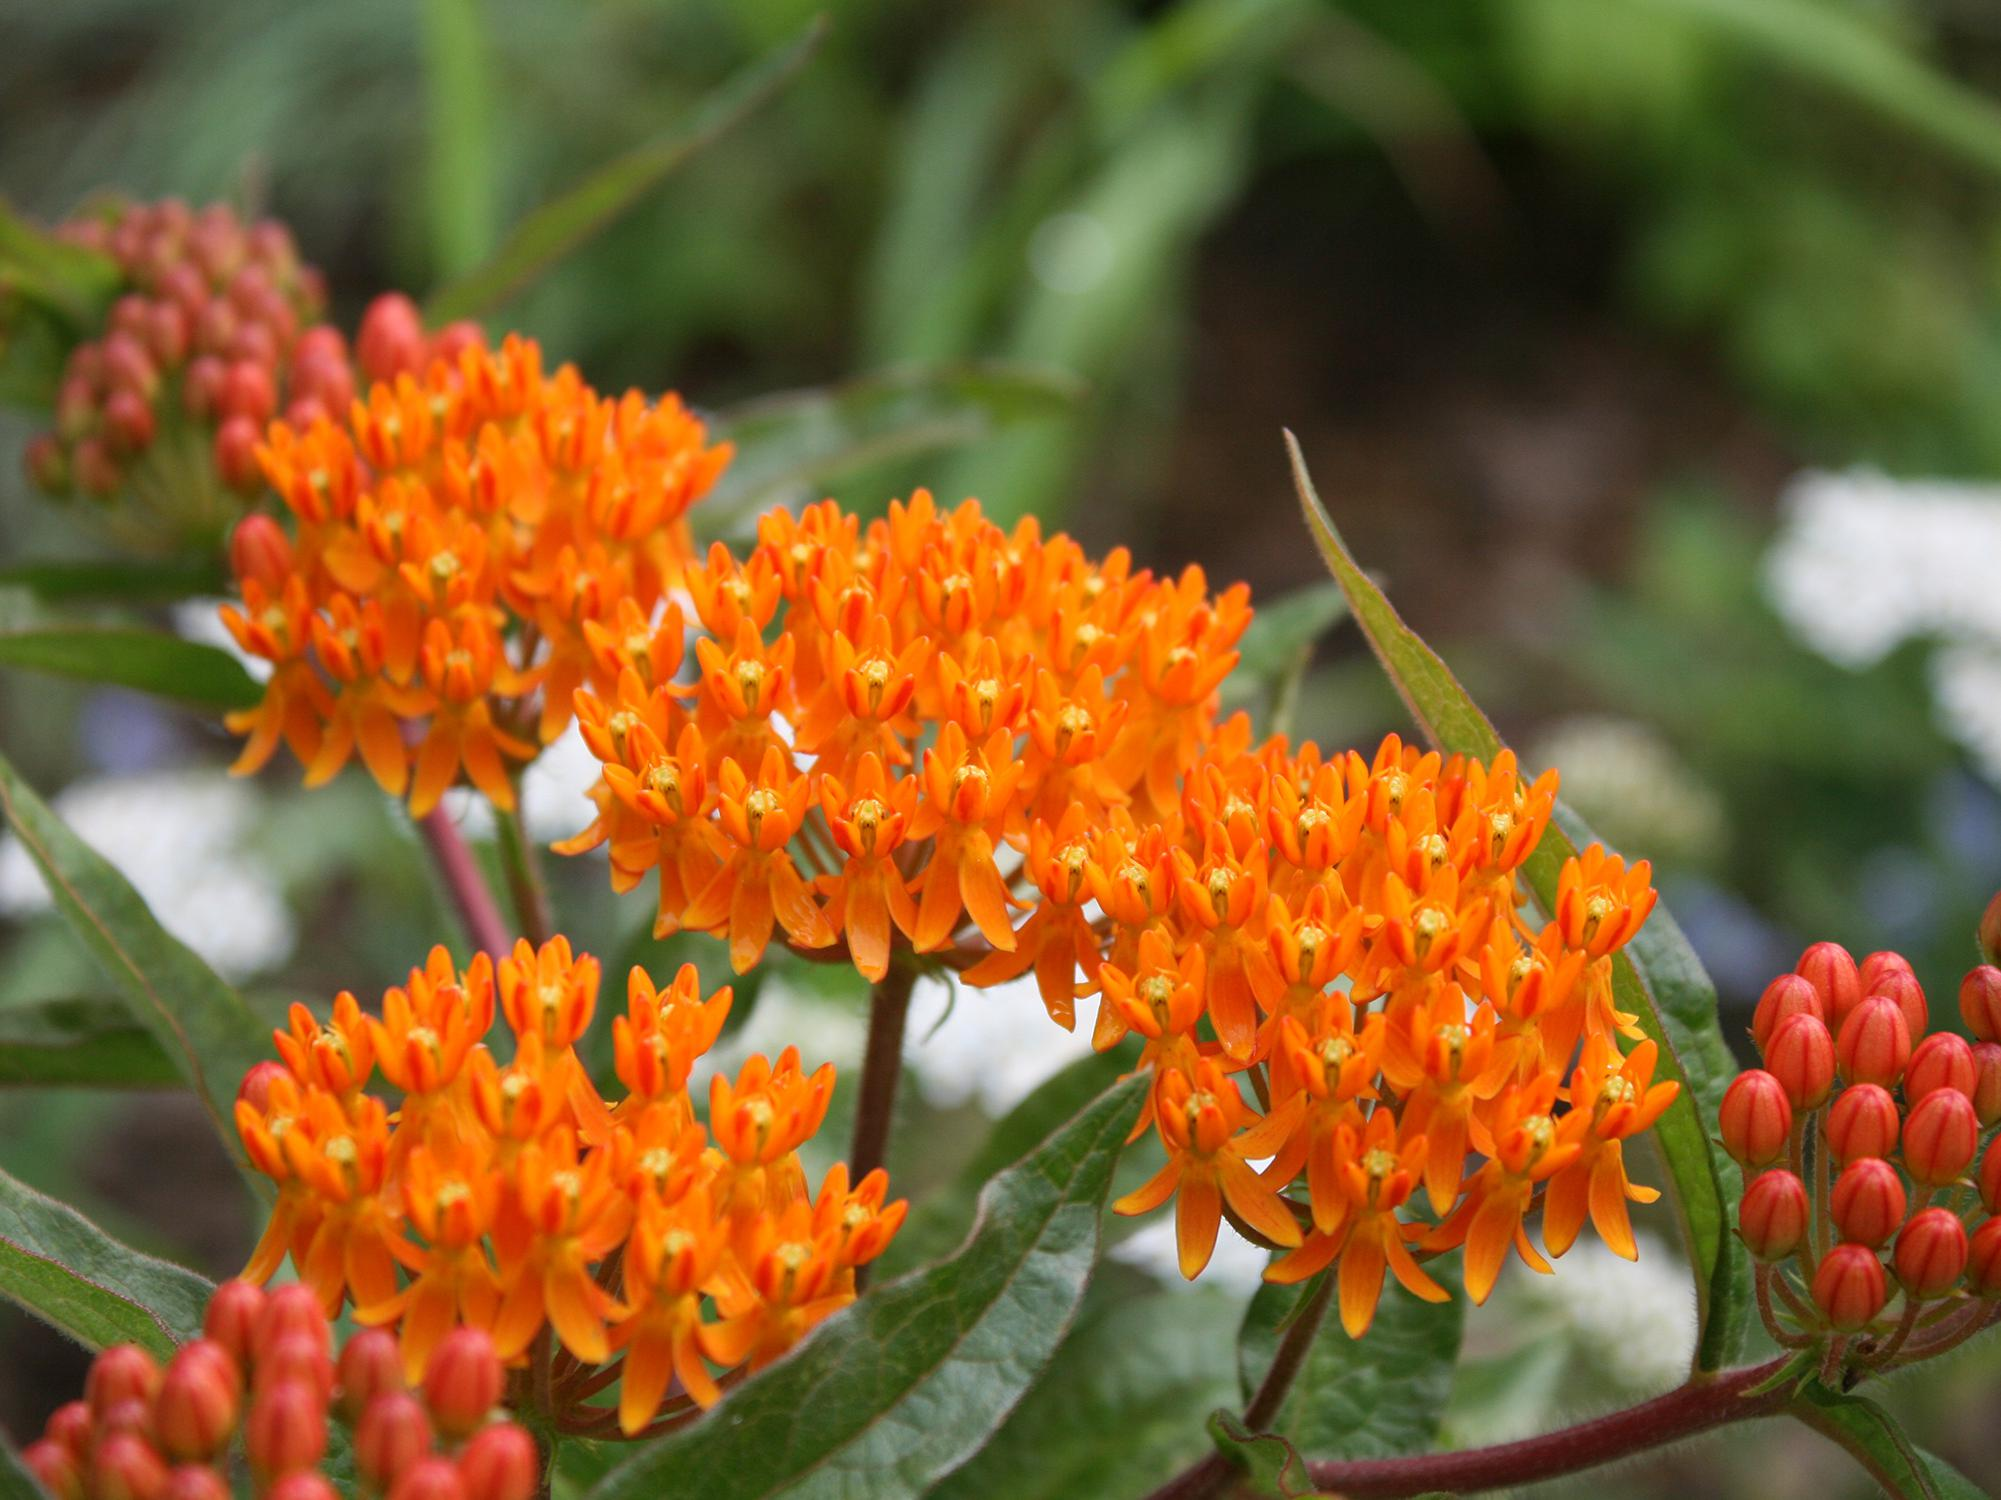 Small, orange flower petals cluster together on top of stems and leaves.